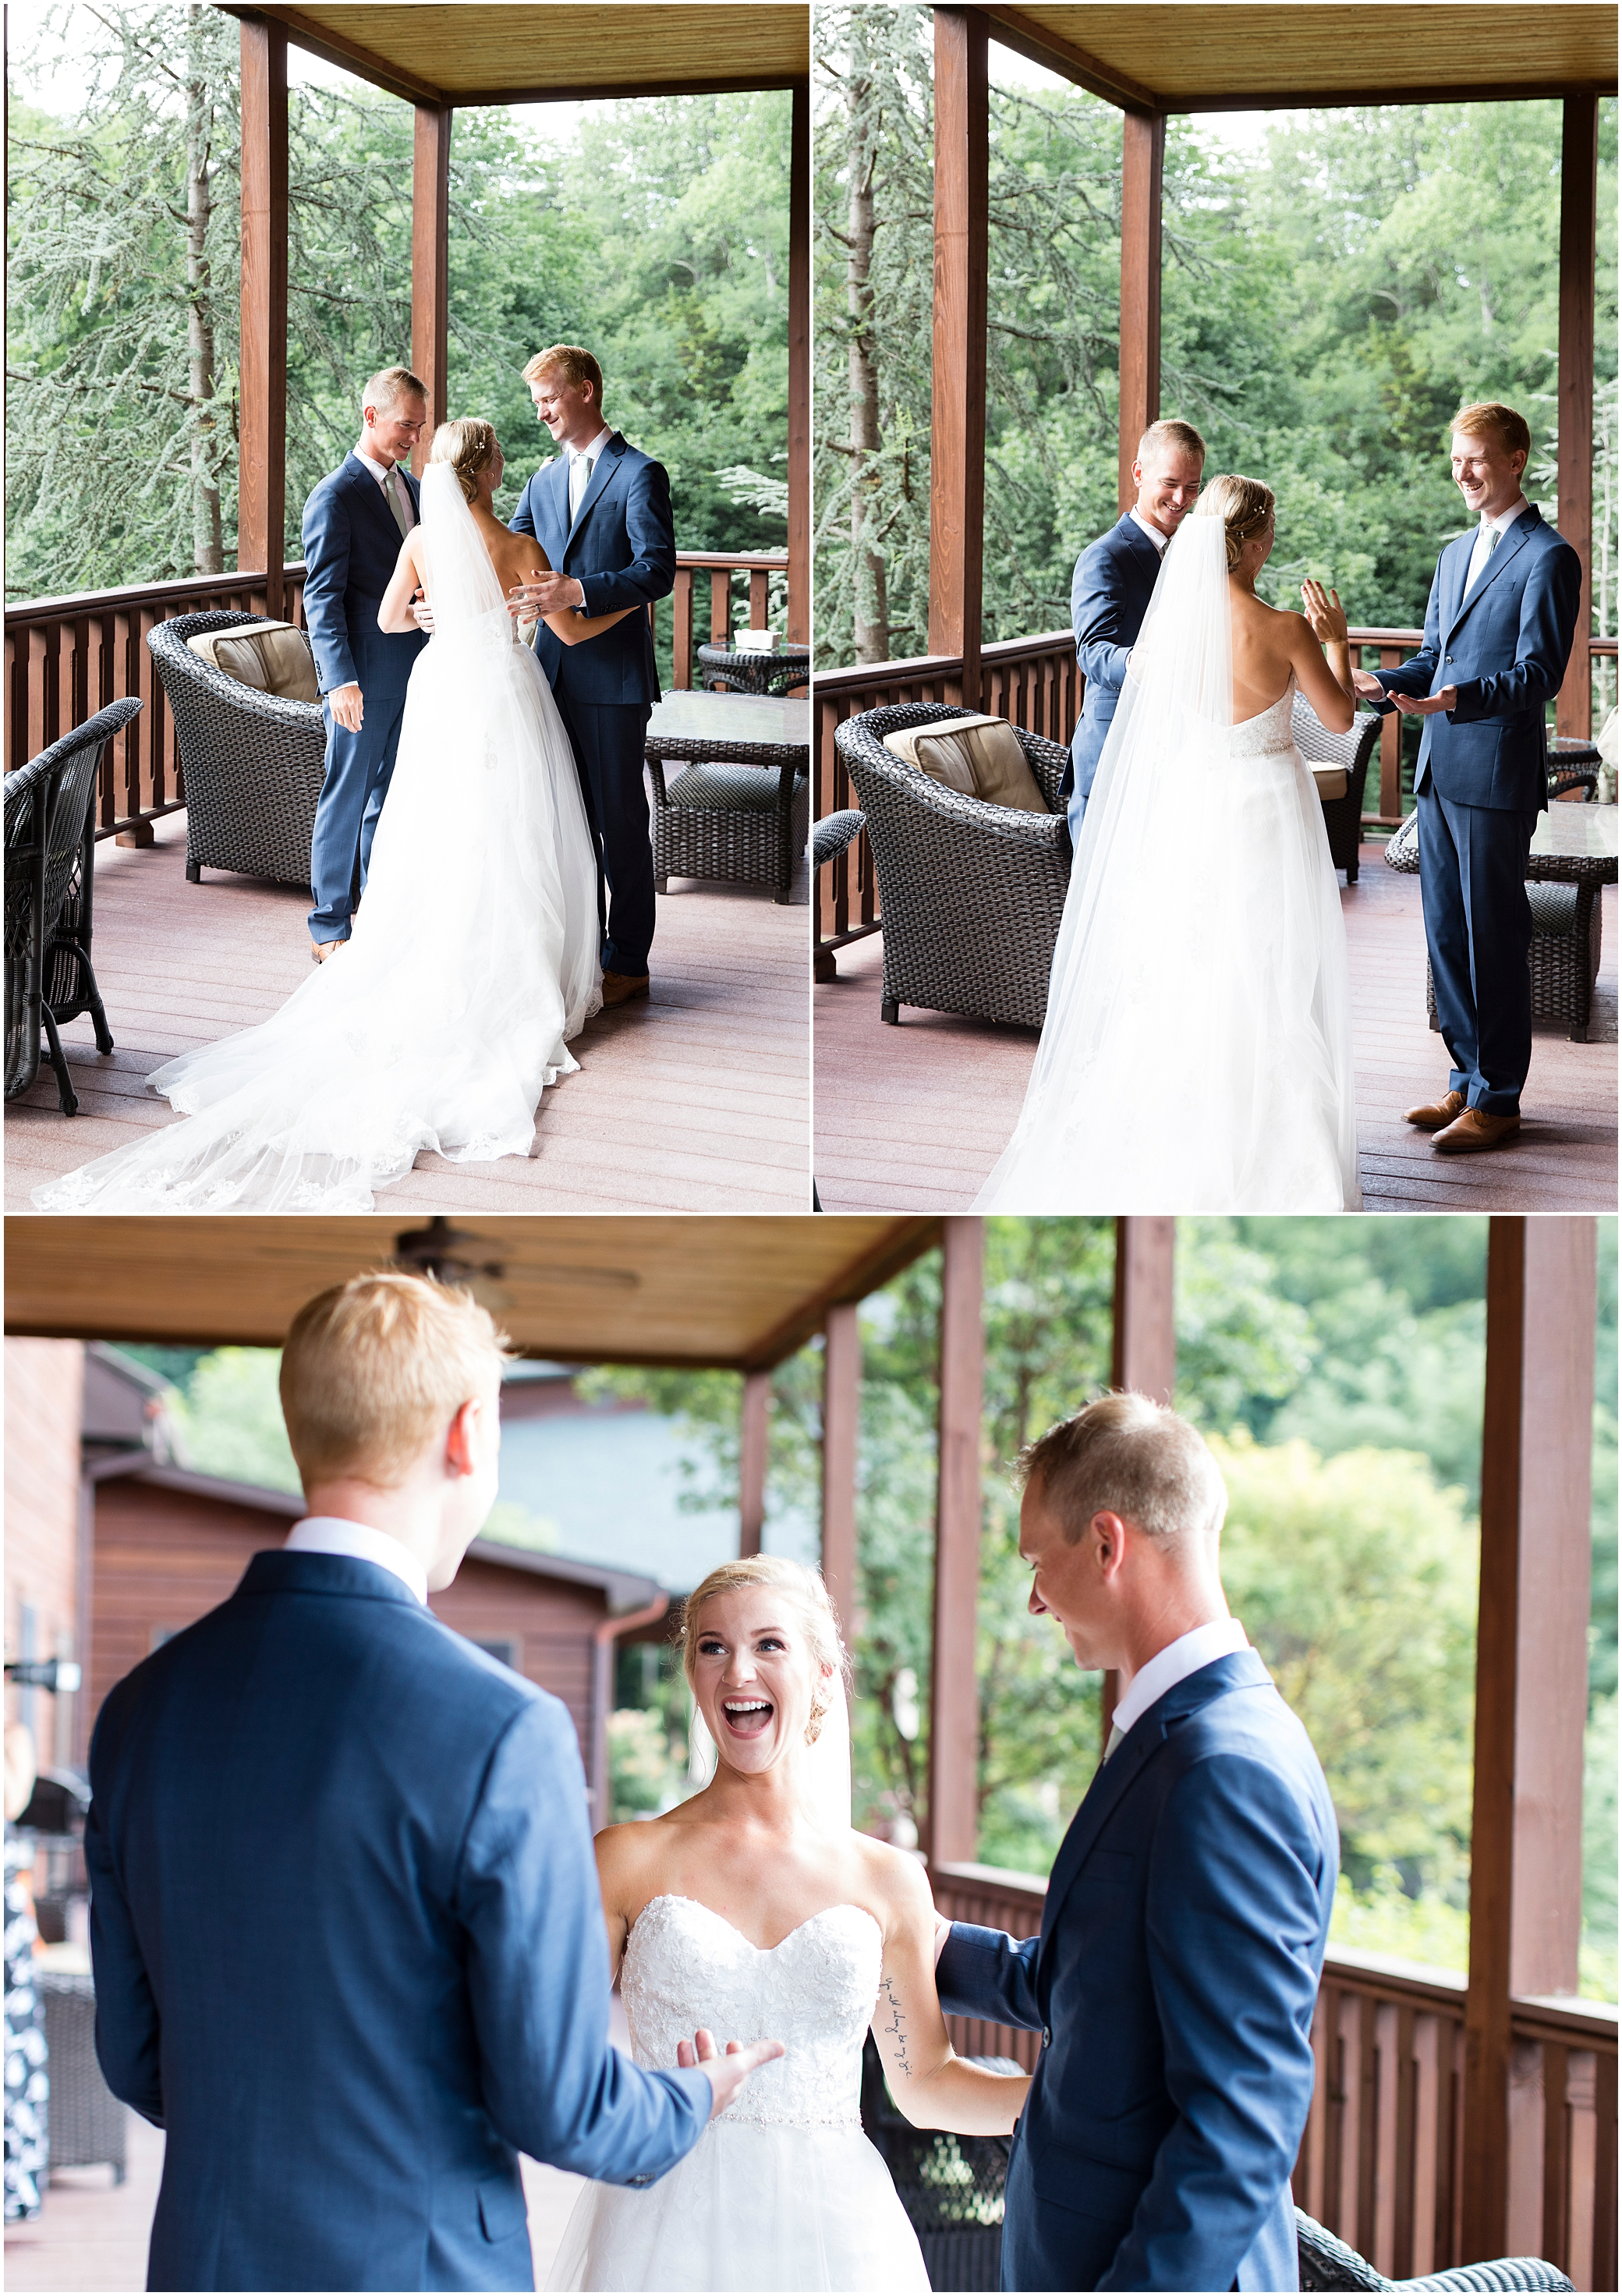 House Mountain Inn Wedding, Virginia wedding in the mountains, bride first look with her brothers